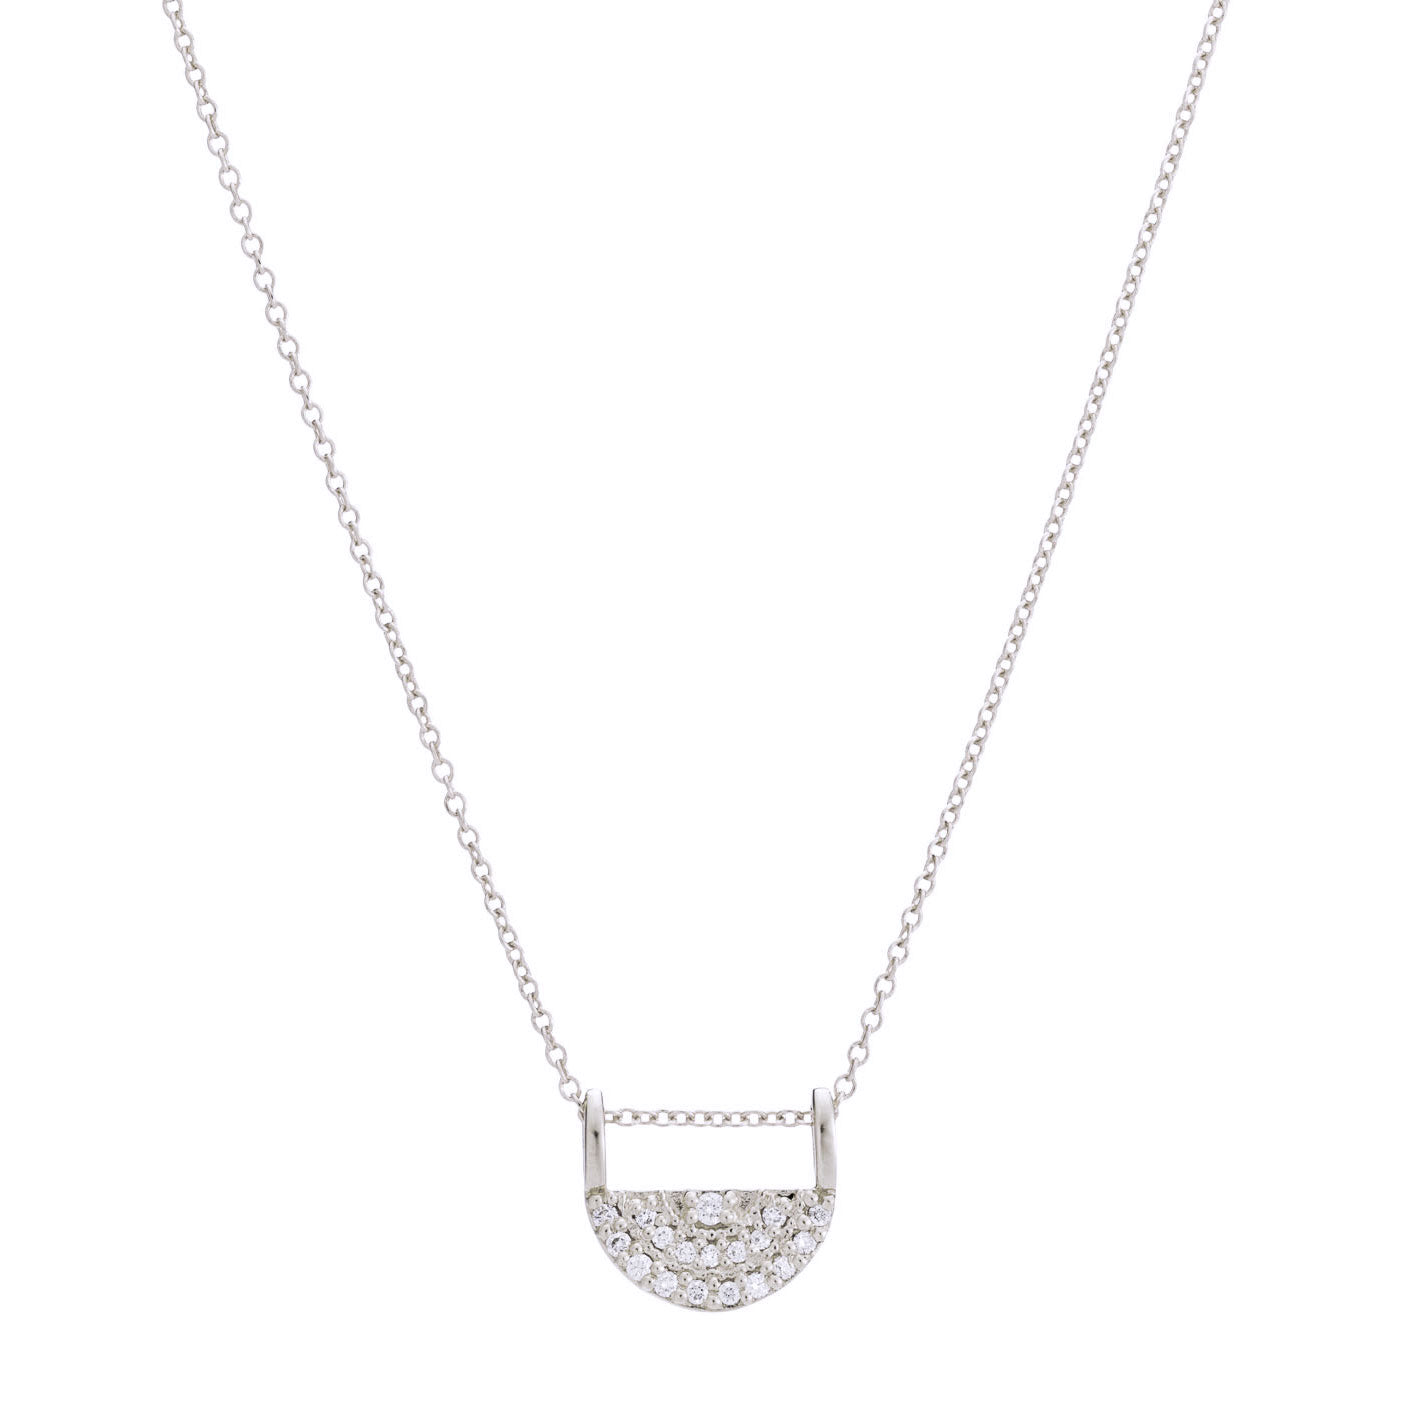 Half Moon Pavé Diamond Pendant Necklace